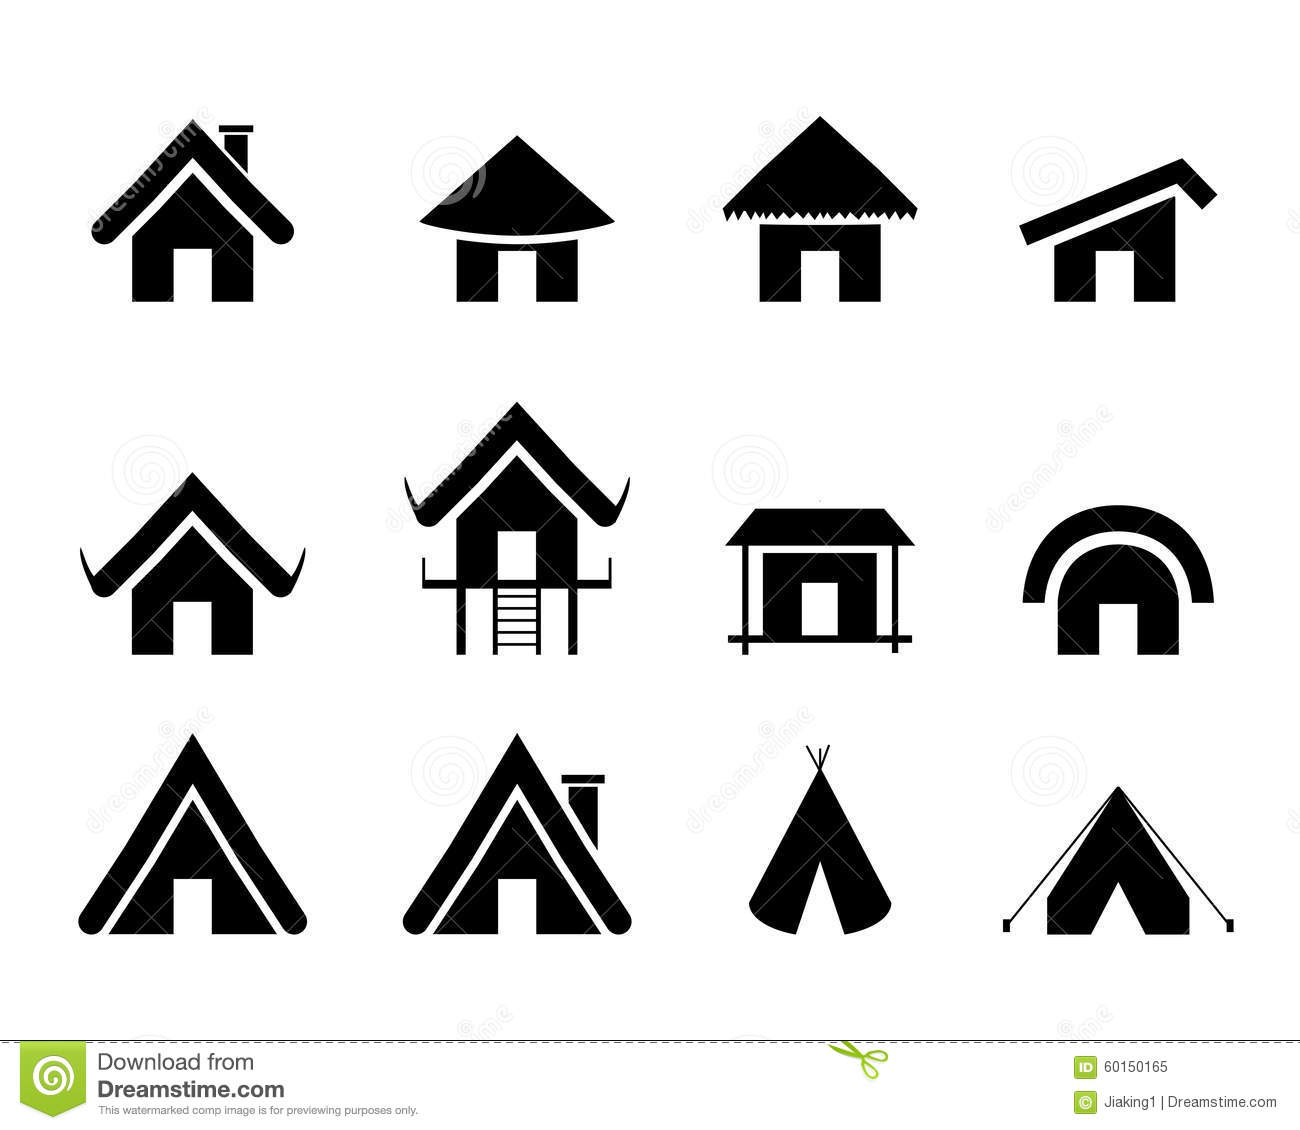 Studio together with House Plan 3397 D The ALBANY D in addition Nantahala Cottage Rustic House Plan moreover House Plans With In Law Suite as well Stock Illustration Chinese House Icons Black Ancient Temples Traditional Oriental Buildings Set Isolated Vector Illustration Image44608319. on traditional house plans